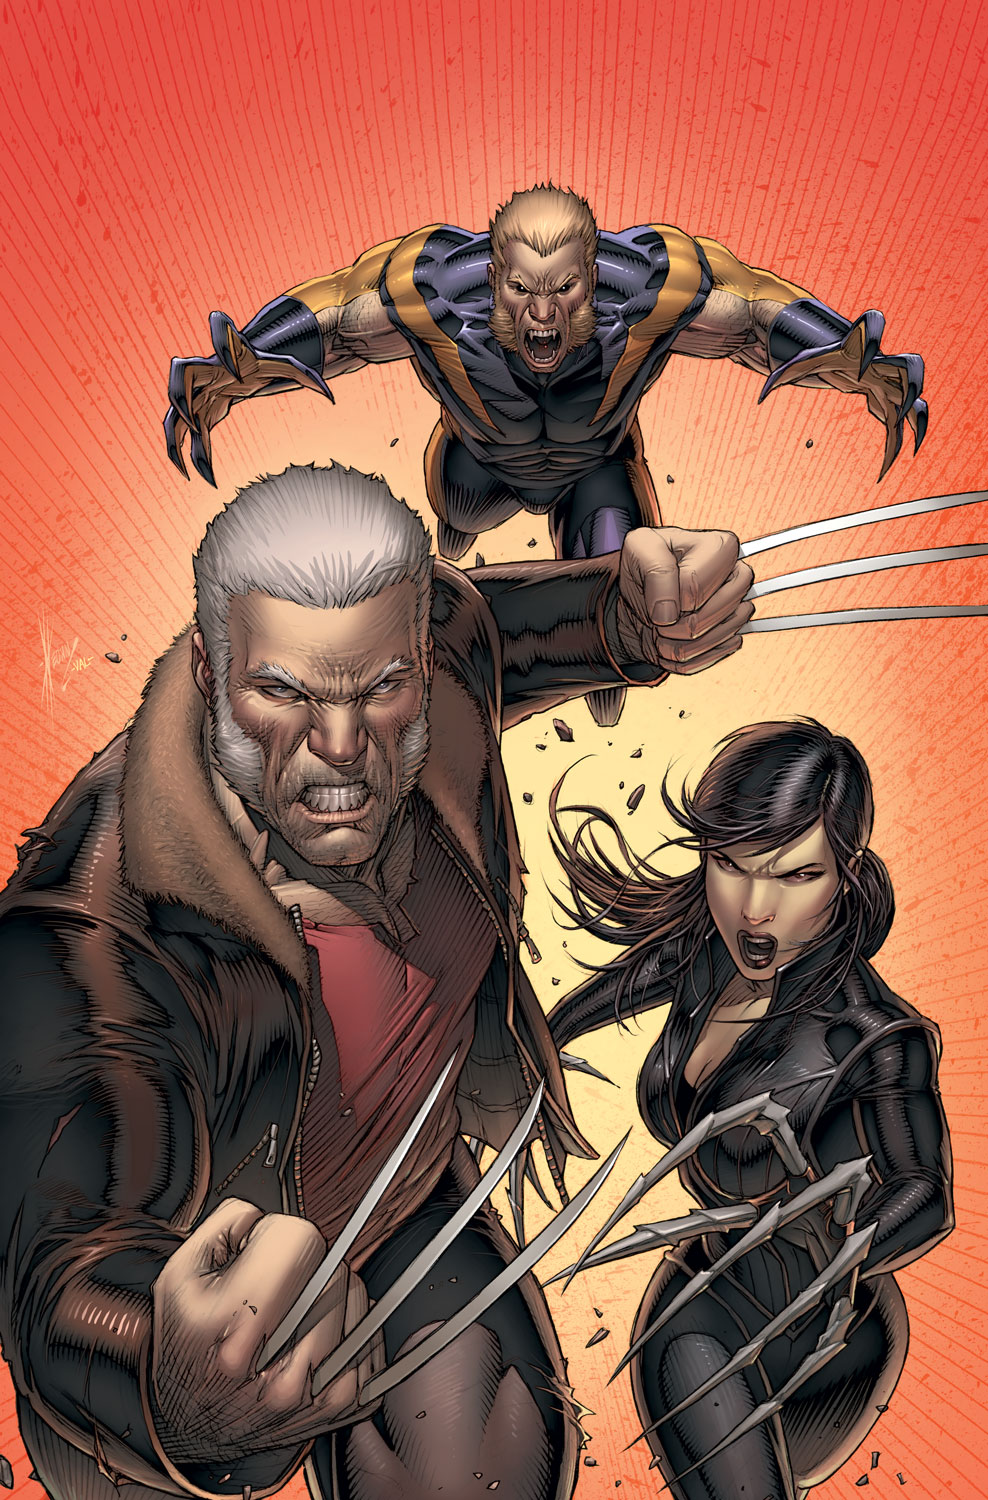 WEAPON X #1 Unites Deadly Mutants For a Deadlier Mission – Your First Look!